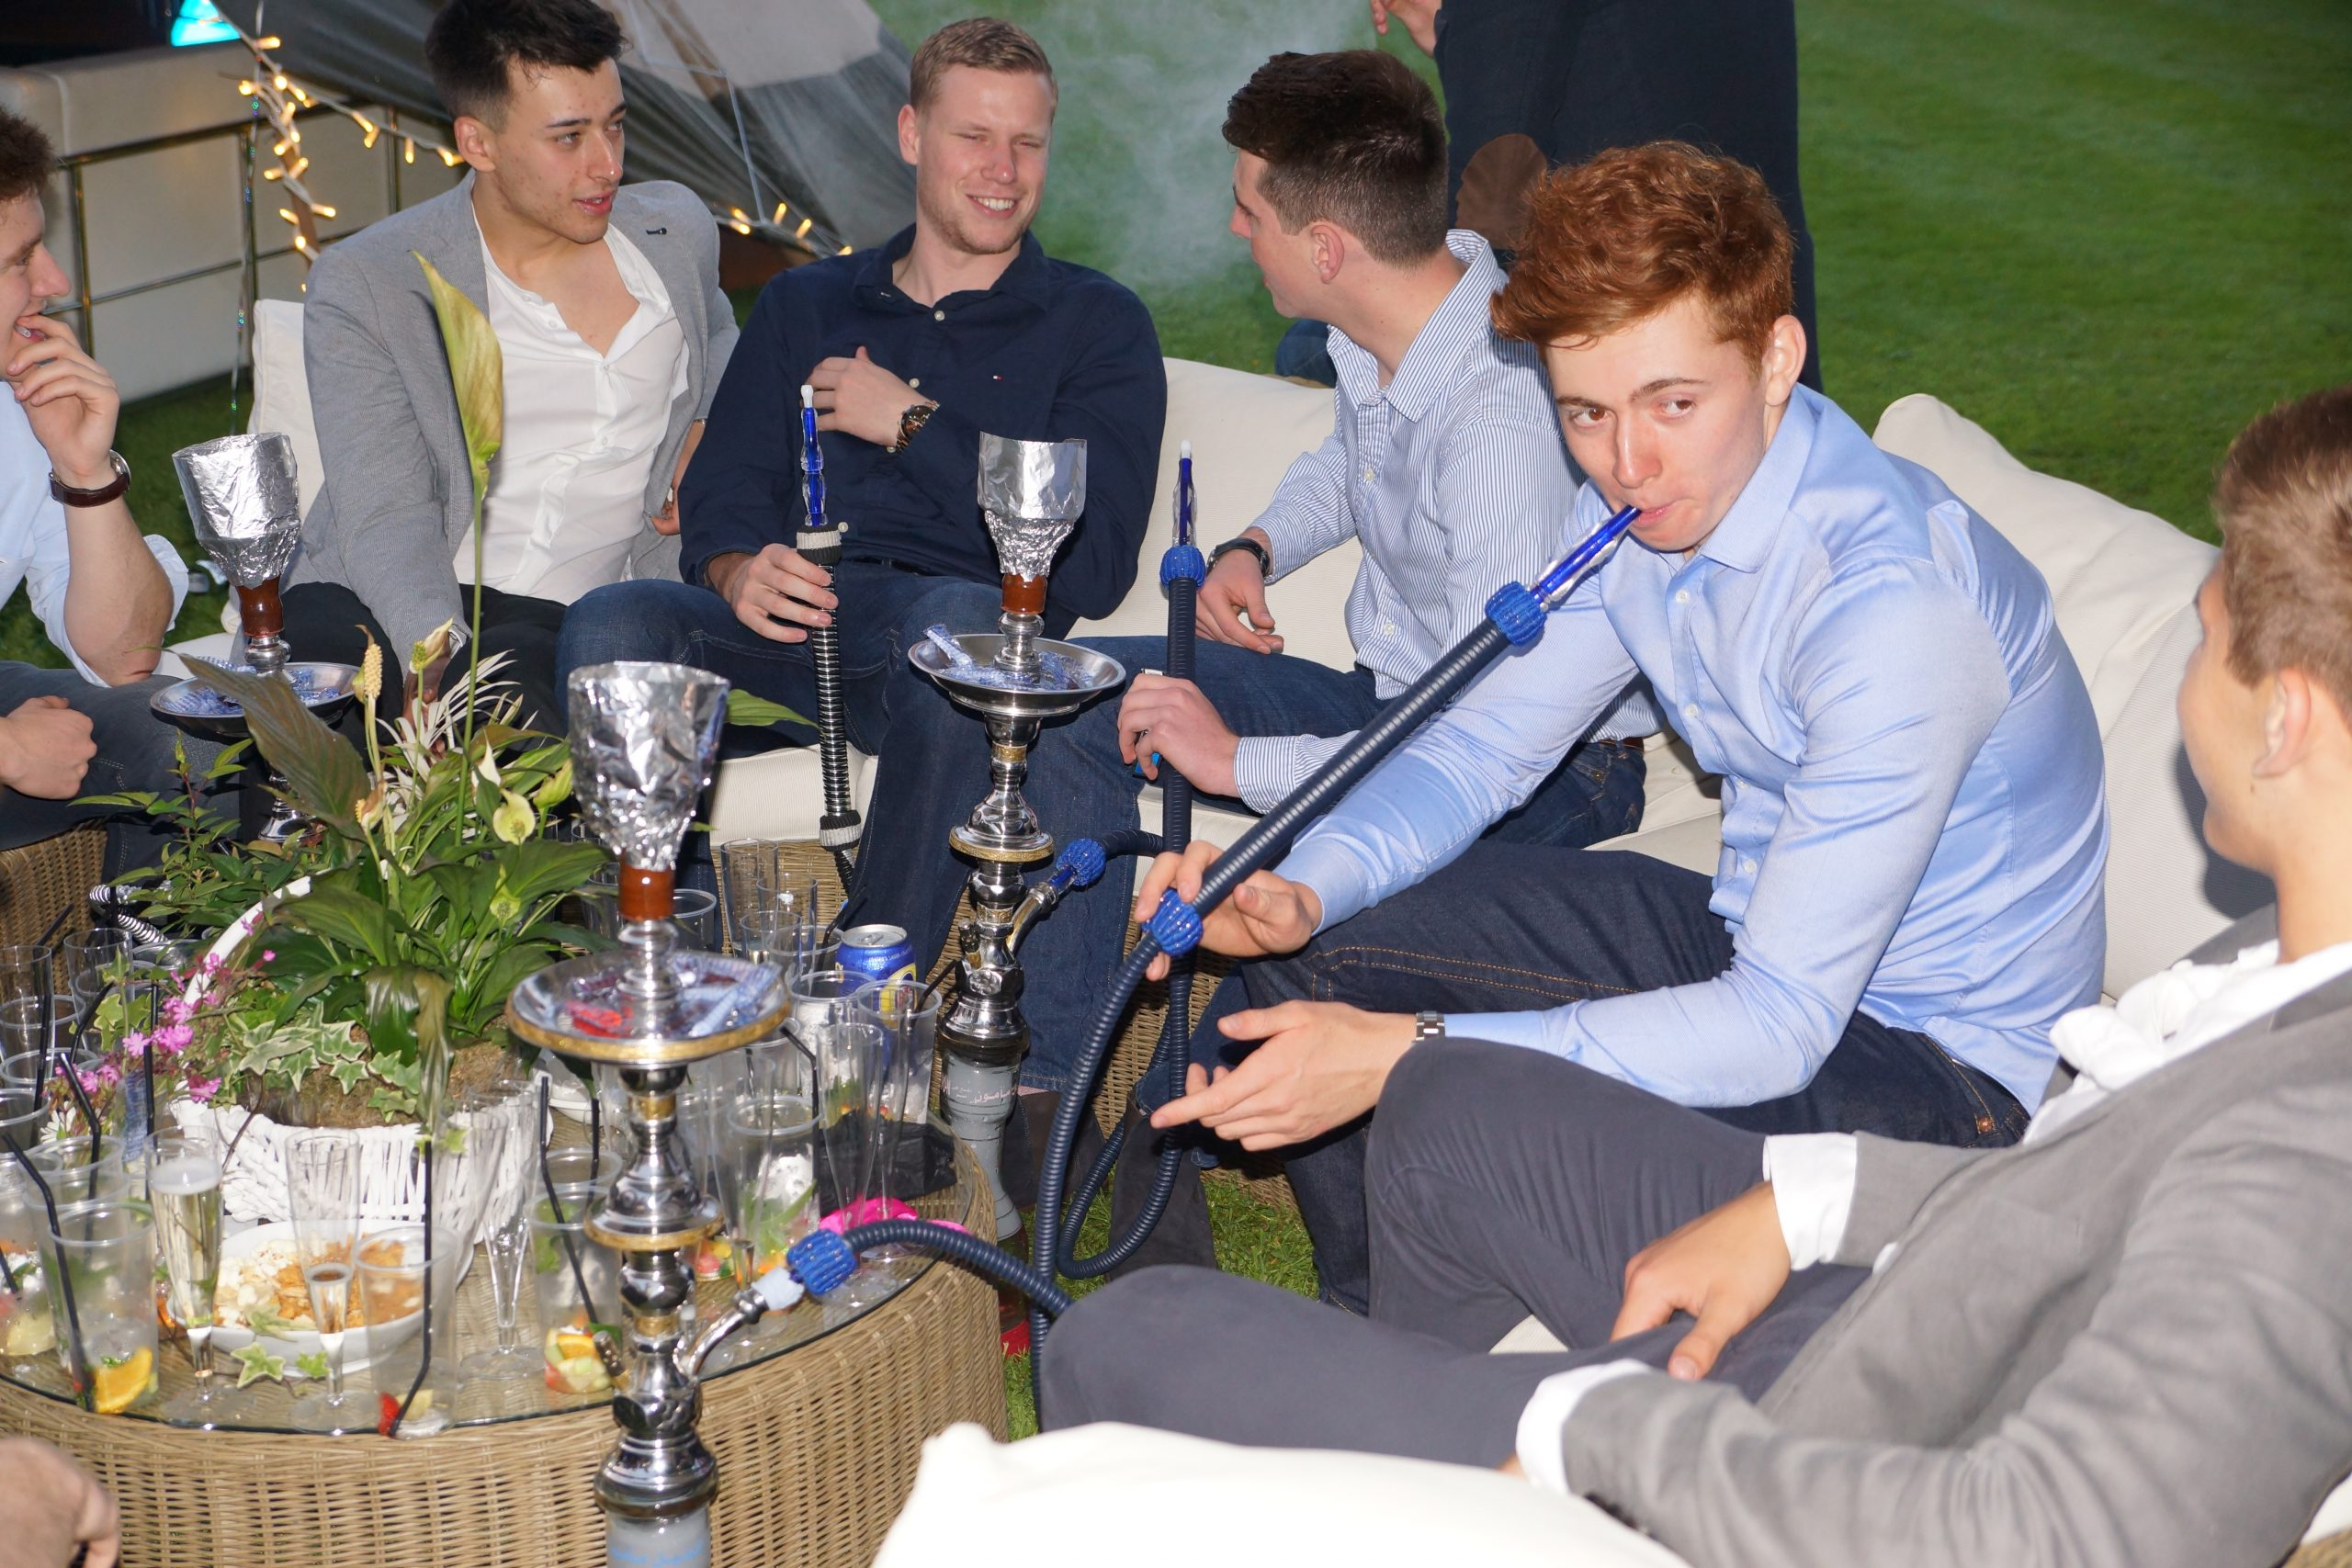 Shisha Hire Kent - Weddings, Birthday Parties, Corporate Functions and Parties